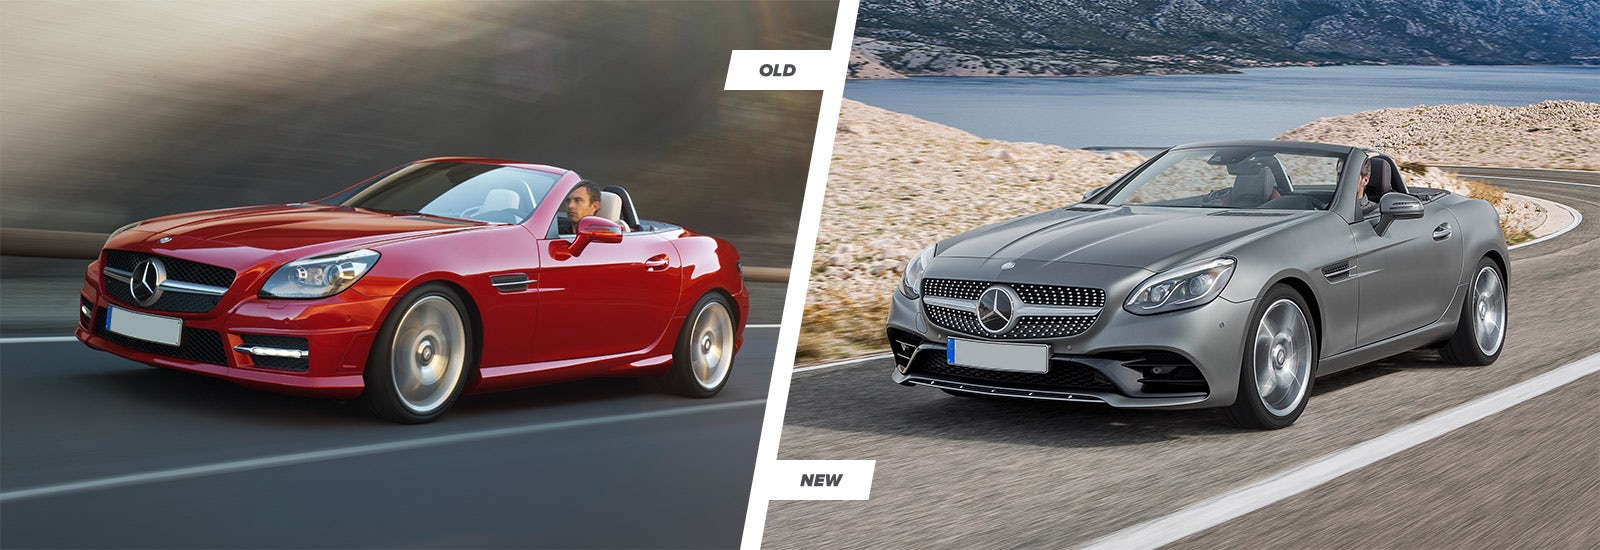 Mercedes Slc Vs Slk Facelift Comparison Carwow Kia Sportage Fuse Box 2012 At First Glance Both Models Look Very Similar You Still Get The Long Bonnet And Rear Mounted Cabin Expected Of A Sports Car